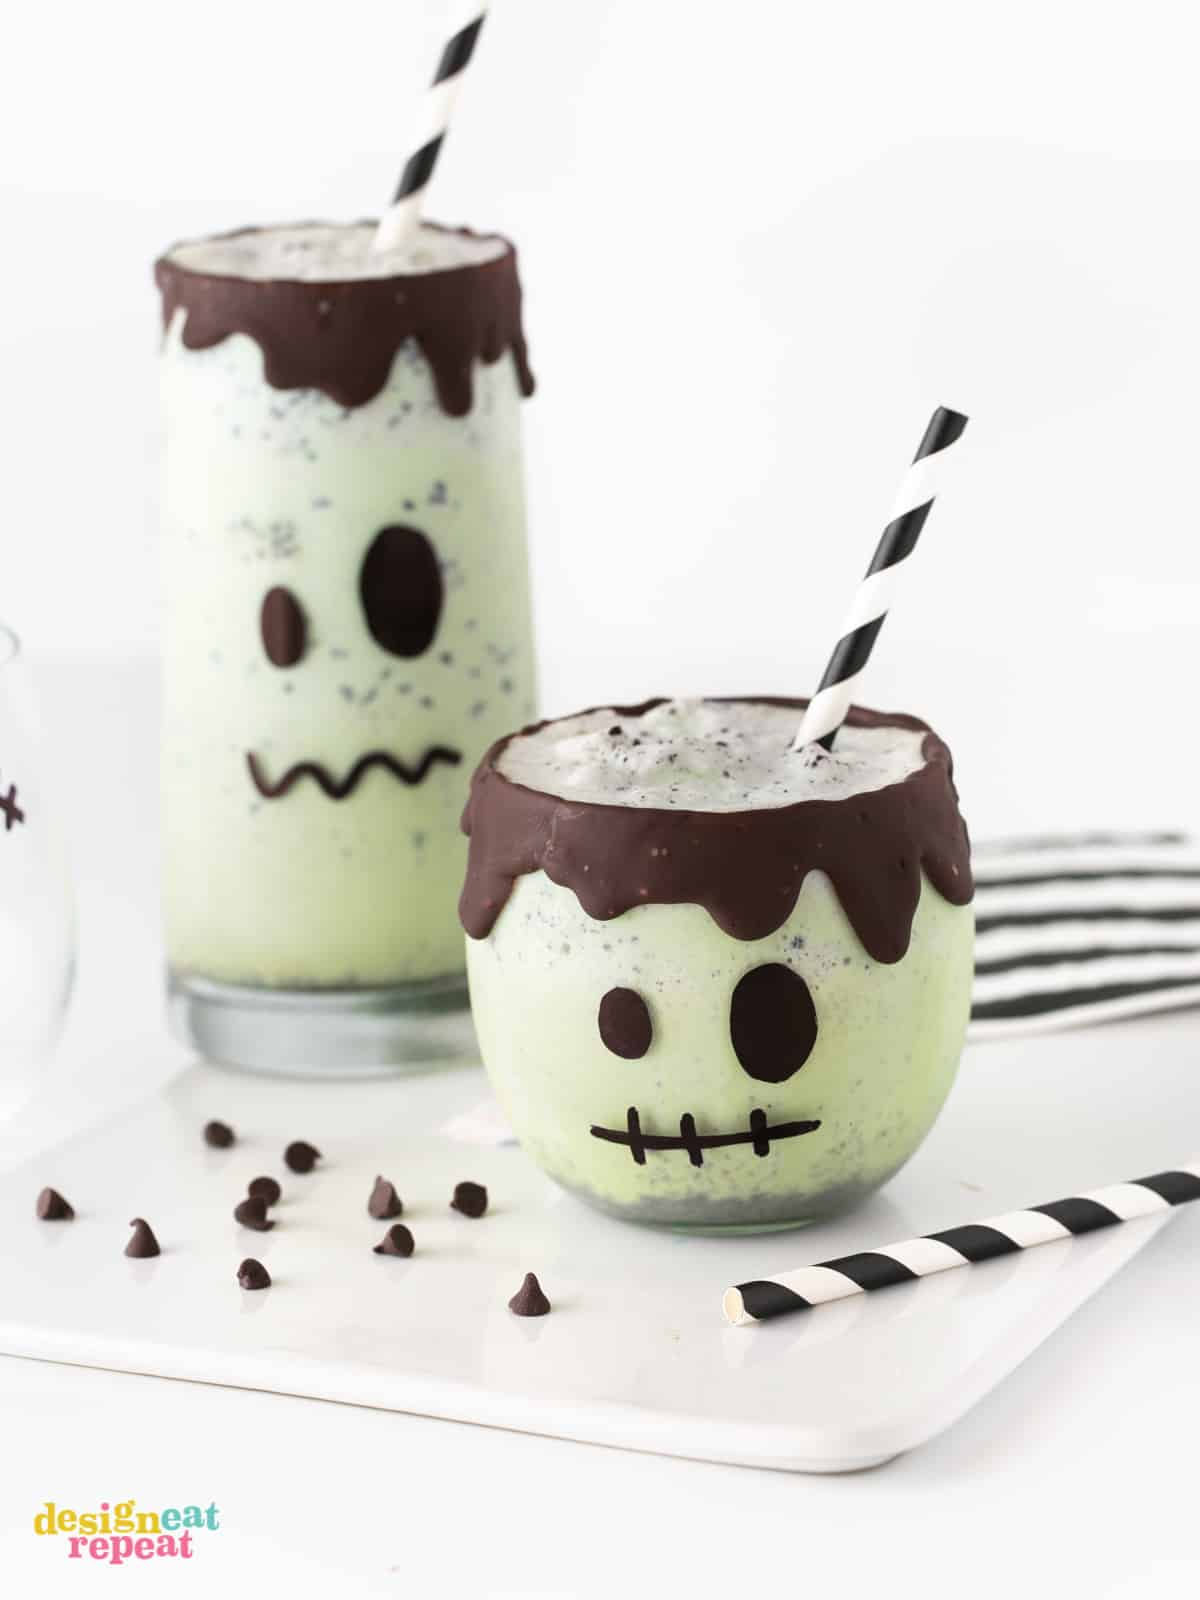 Small mint milkshake decorated like Frankenstein with chocolate rim. With paper black straw and tall Frankenstein green milkshake on white cutting board. Easy Halloween Milkshakes.